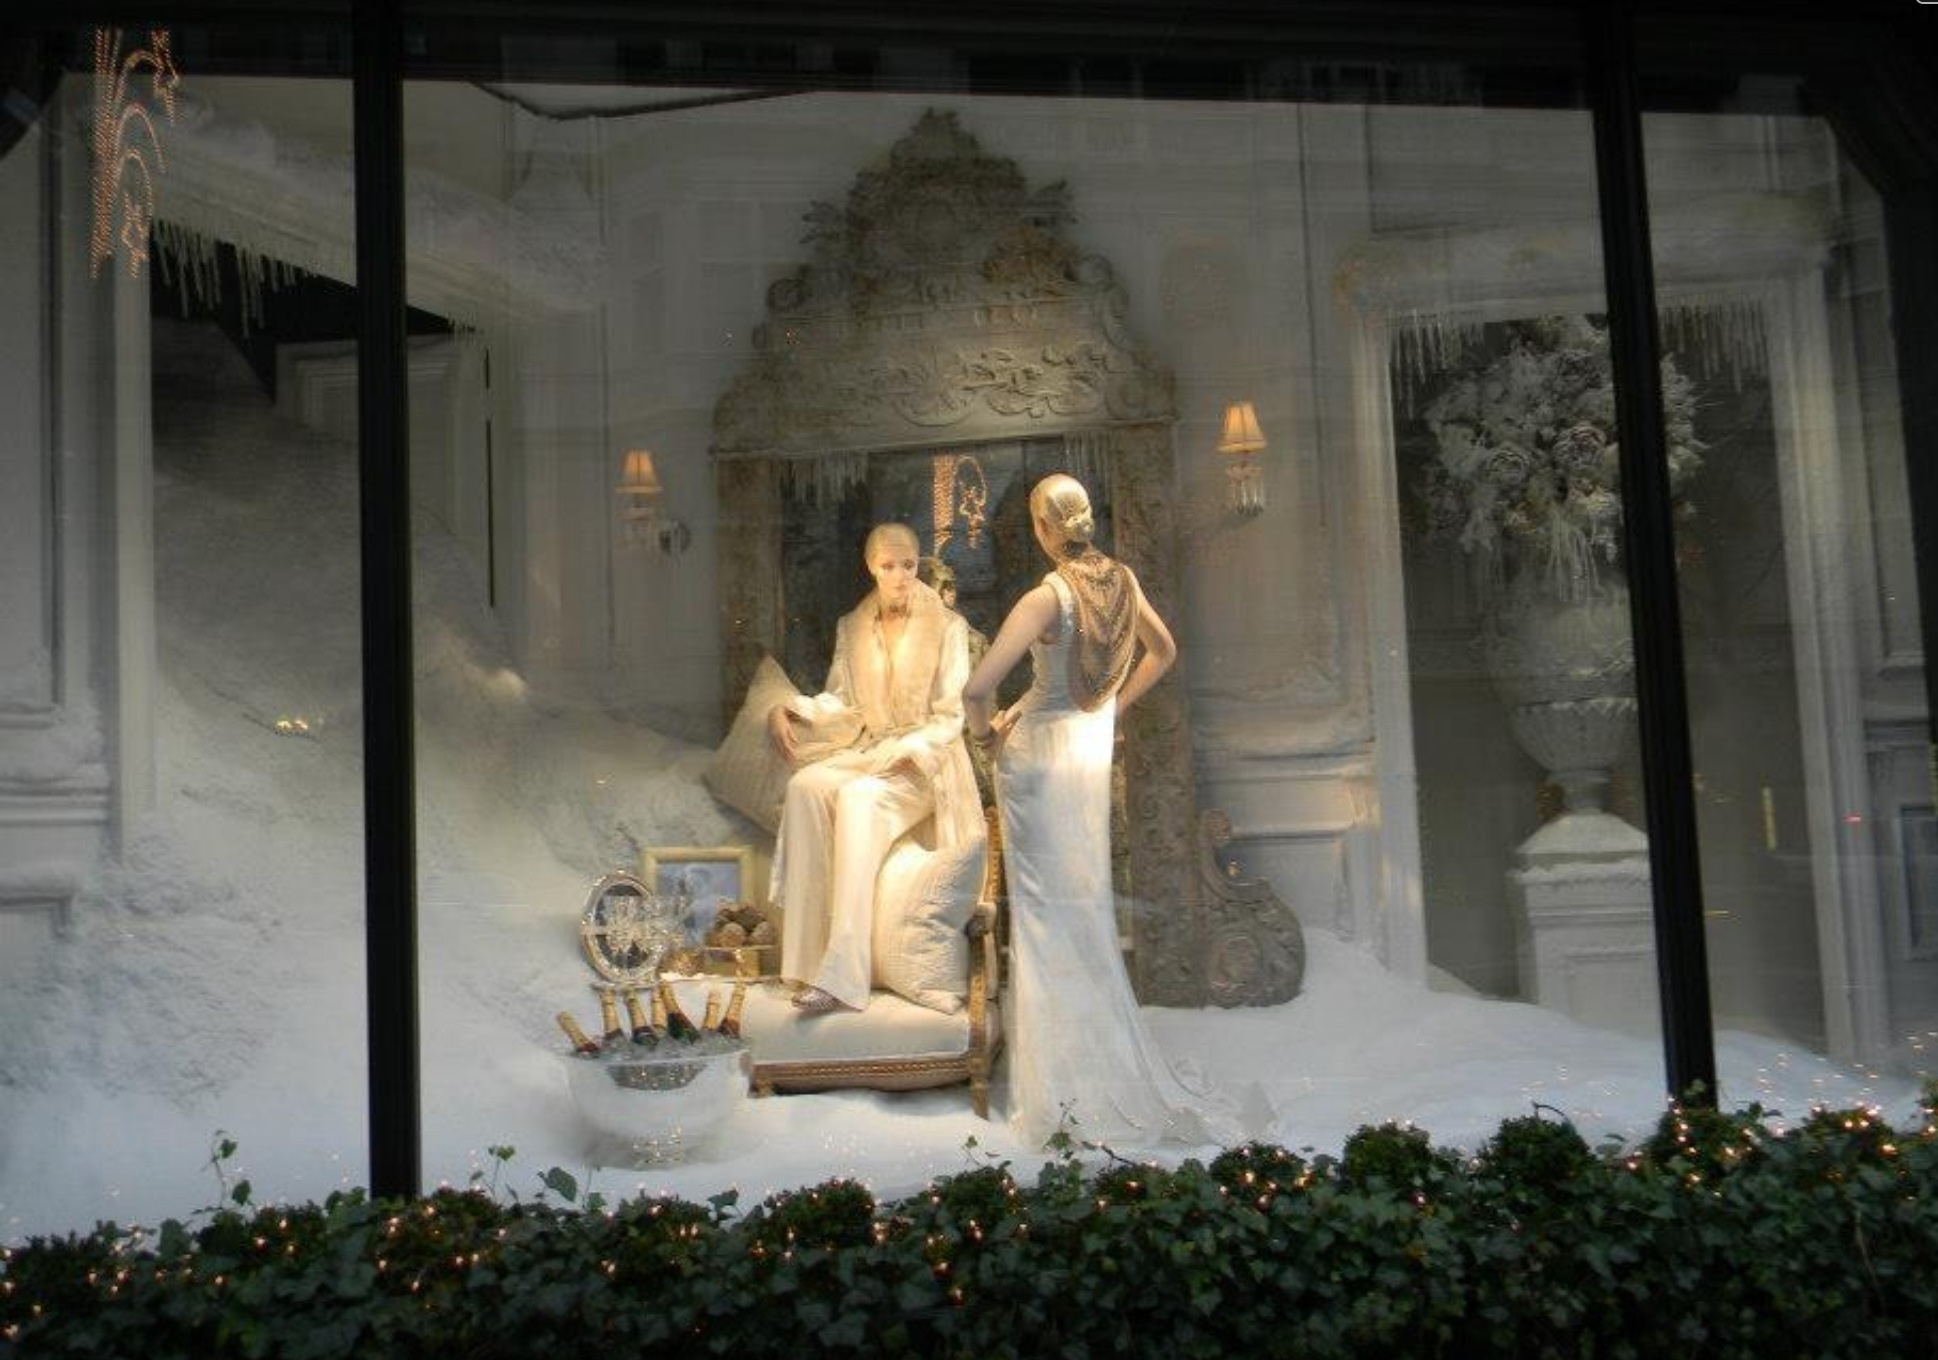 Ralph Lauren surprise us with the elegance of the white decor and it's looking like it's a story to tell, represented in the New Year's Eve window display.